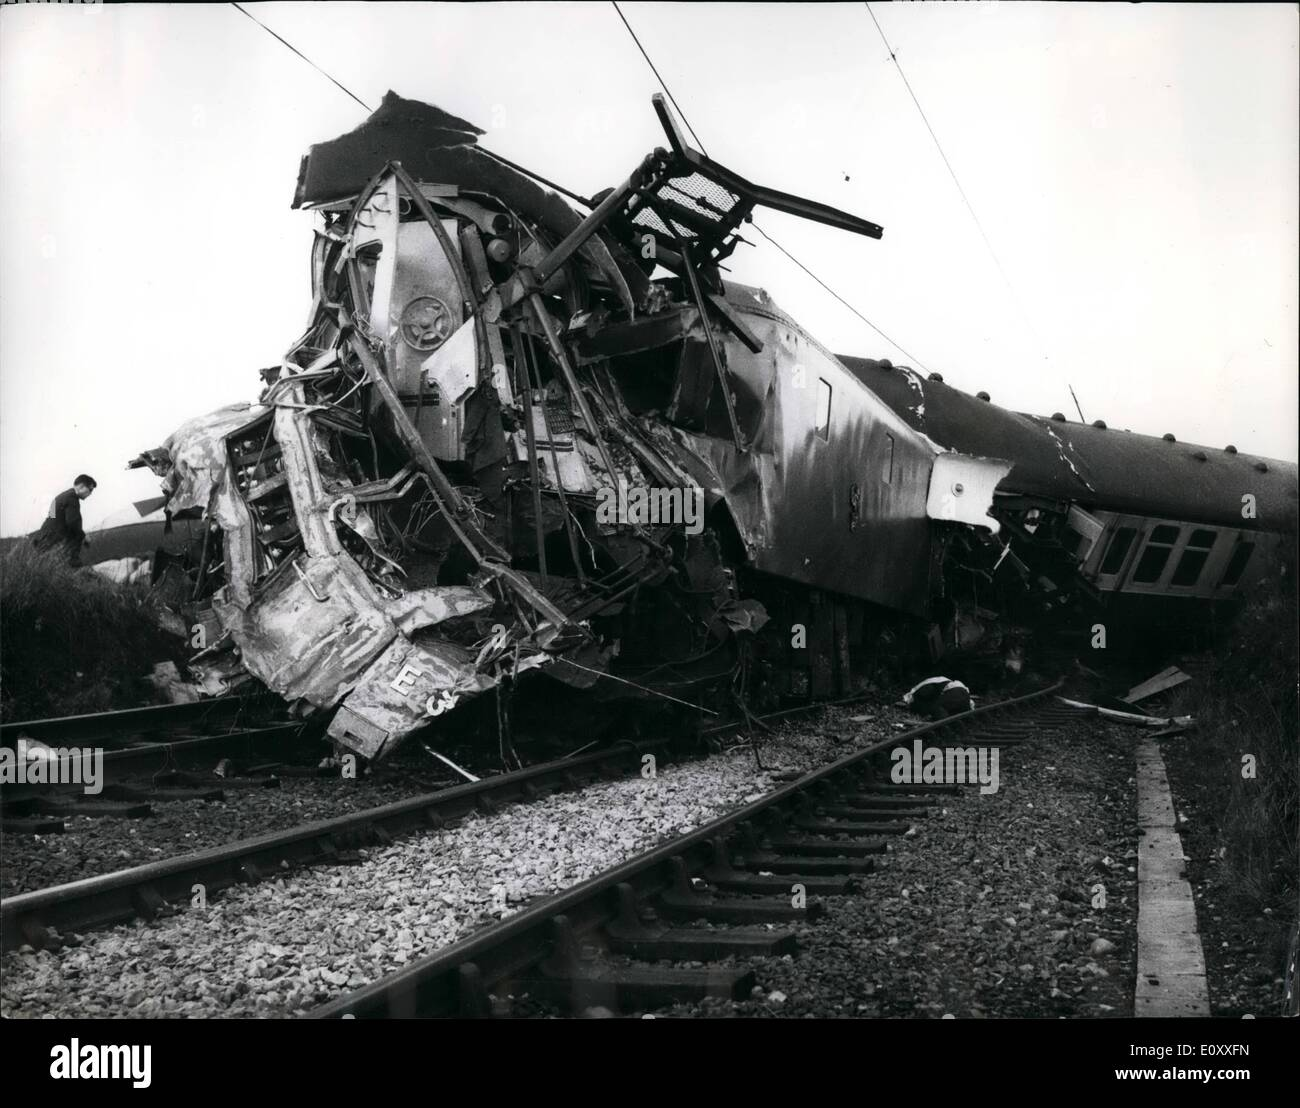 Jan. 01, 1968 - 11 Killed And 40 Injured In Rail Disaster At least 11 people were killed and 40 injured, when the 11.50 a.m. Manchester to Eastex electric express smashed into a heavy road transporter at 80 mph on a level crossing at Horton, Staffs. An official said that other bodies might still be in the wreckage. The transporter, propelled by tractor front and rear, weighed 60 tons and was loaded with a 125-ton transformer, making a total of 185 tons - Stock Image